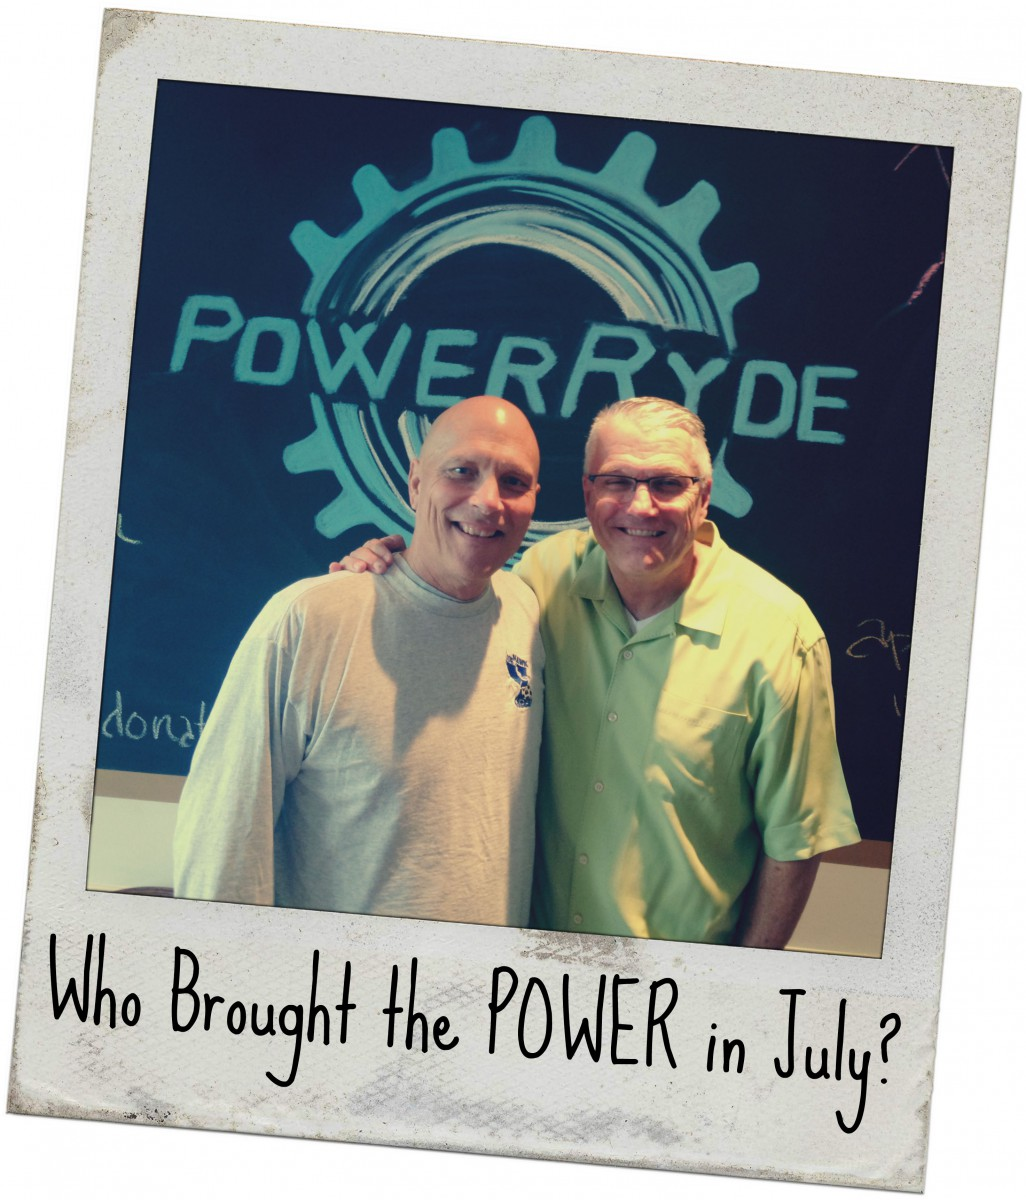 Who brought the POWER in July?